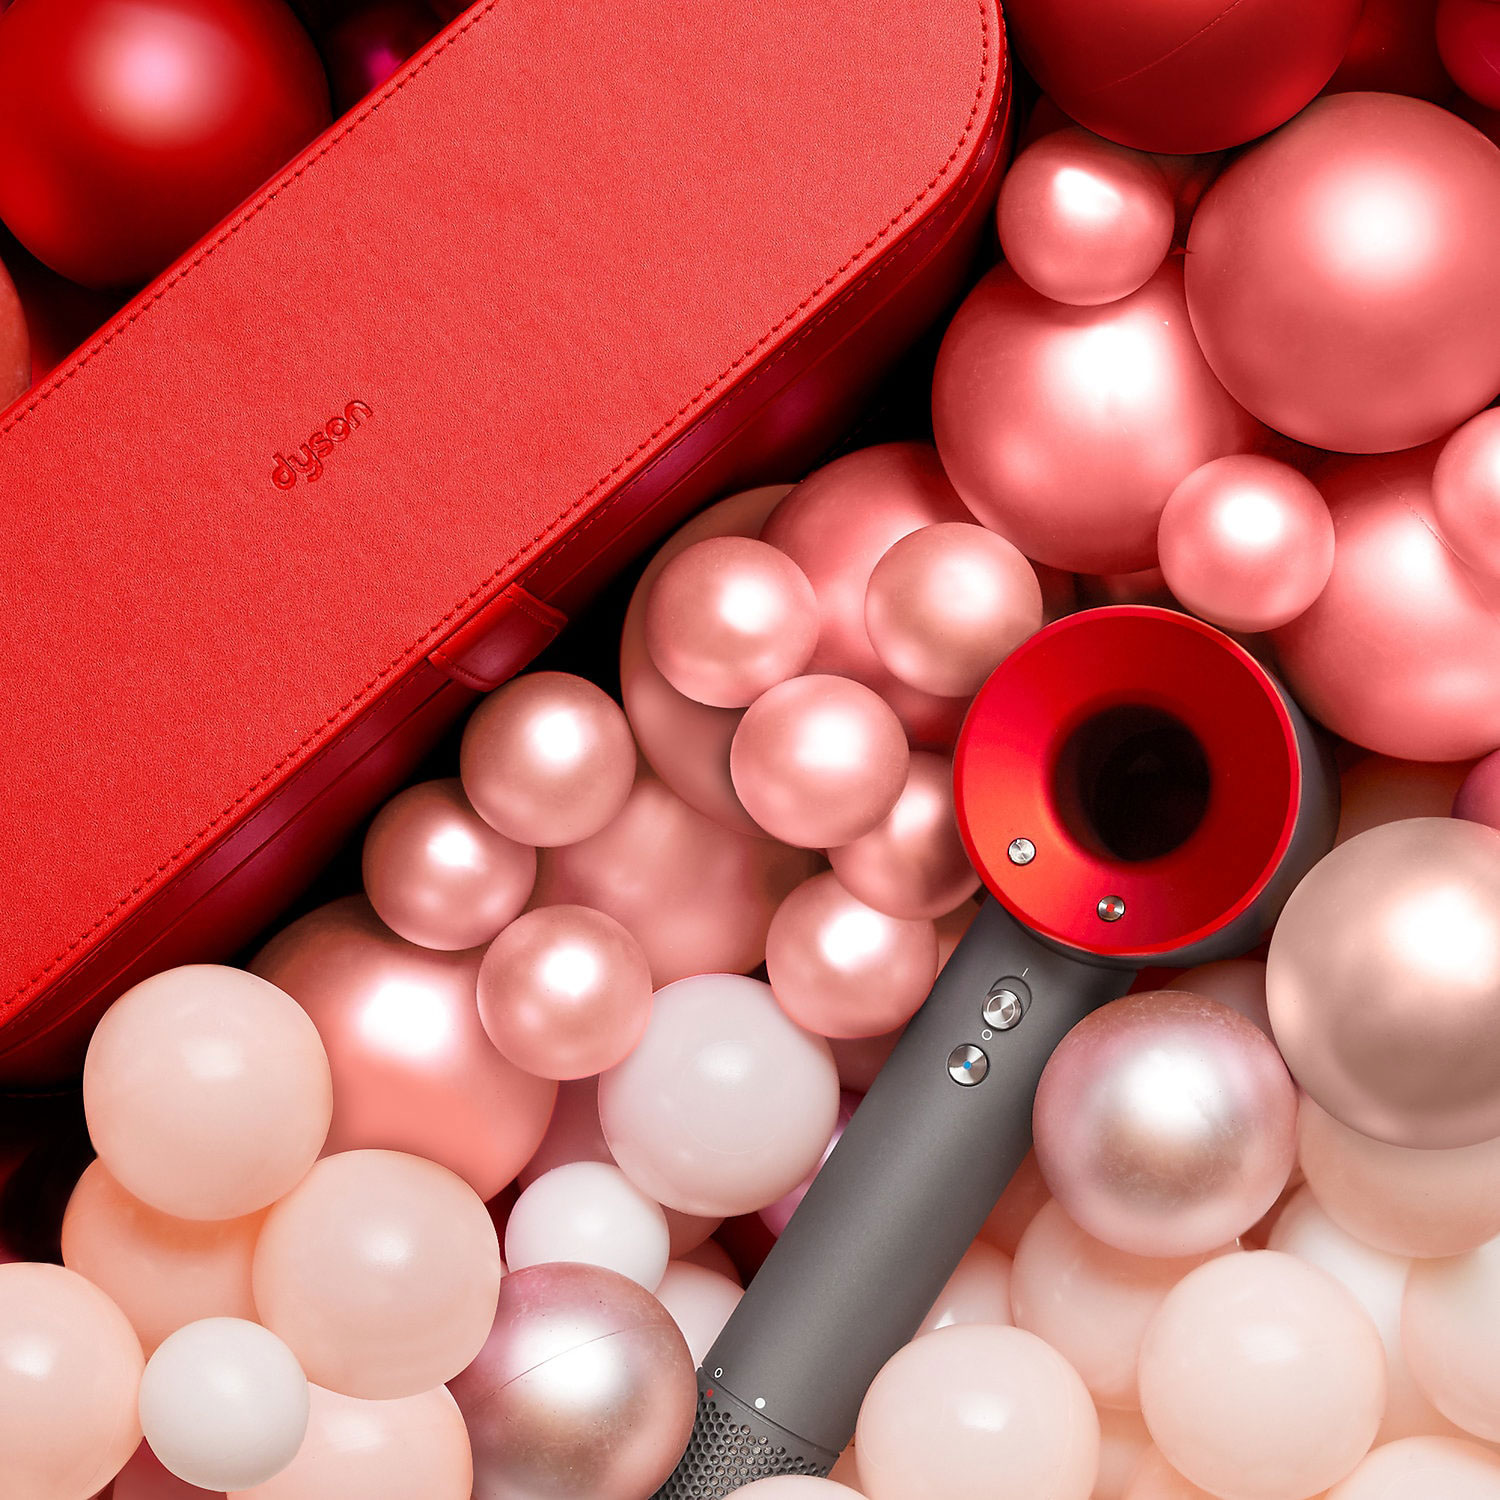 13 Gifts for the Beauty-Lover on Your List